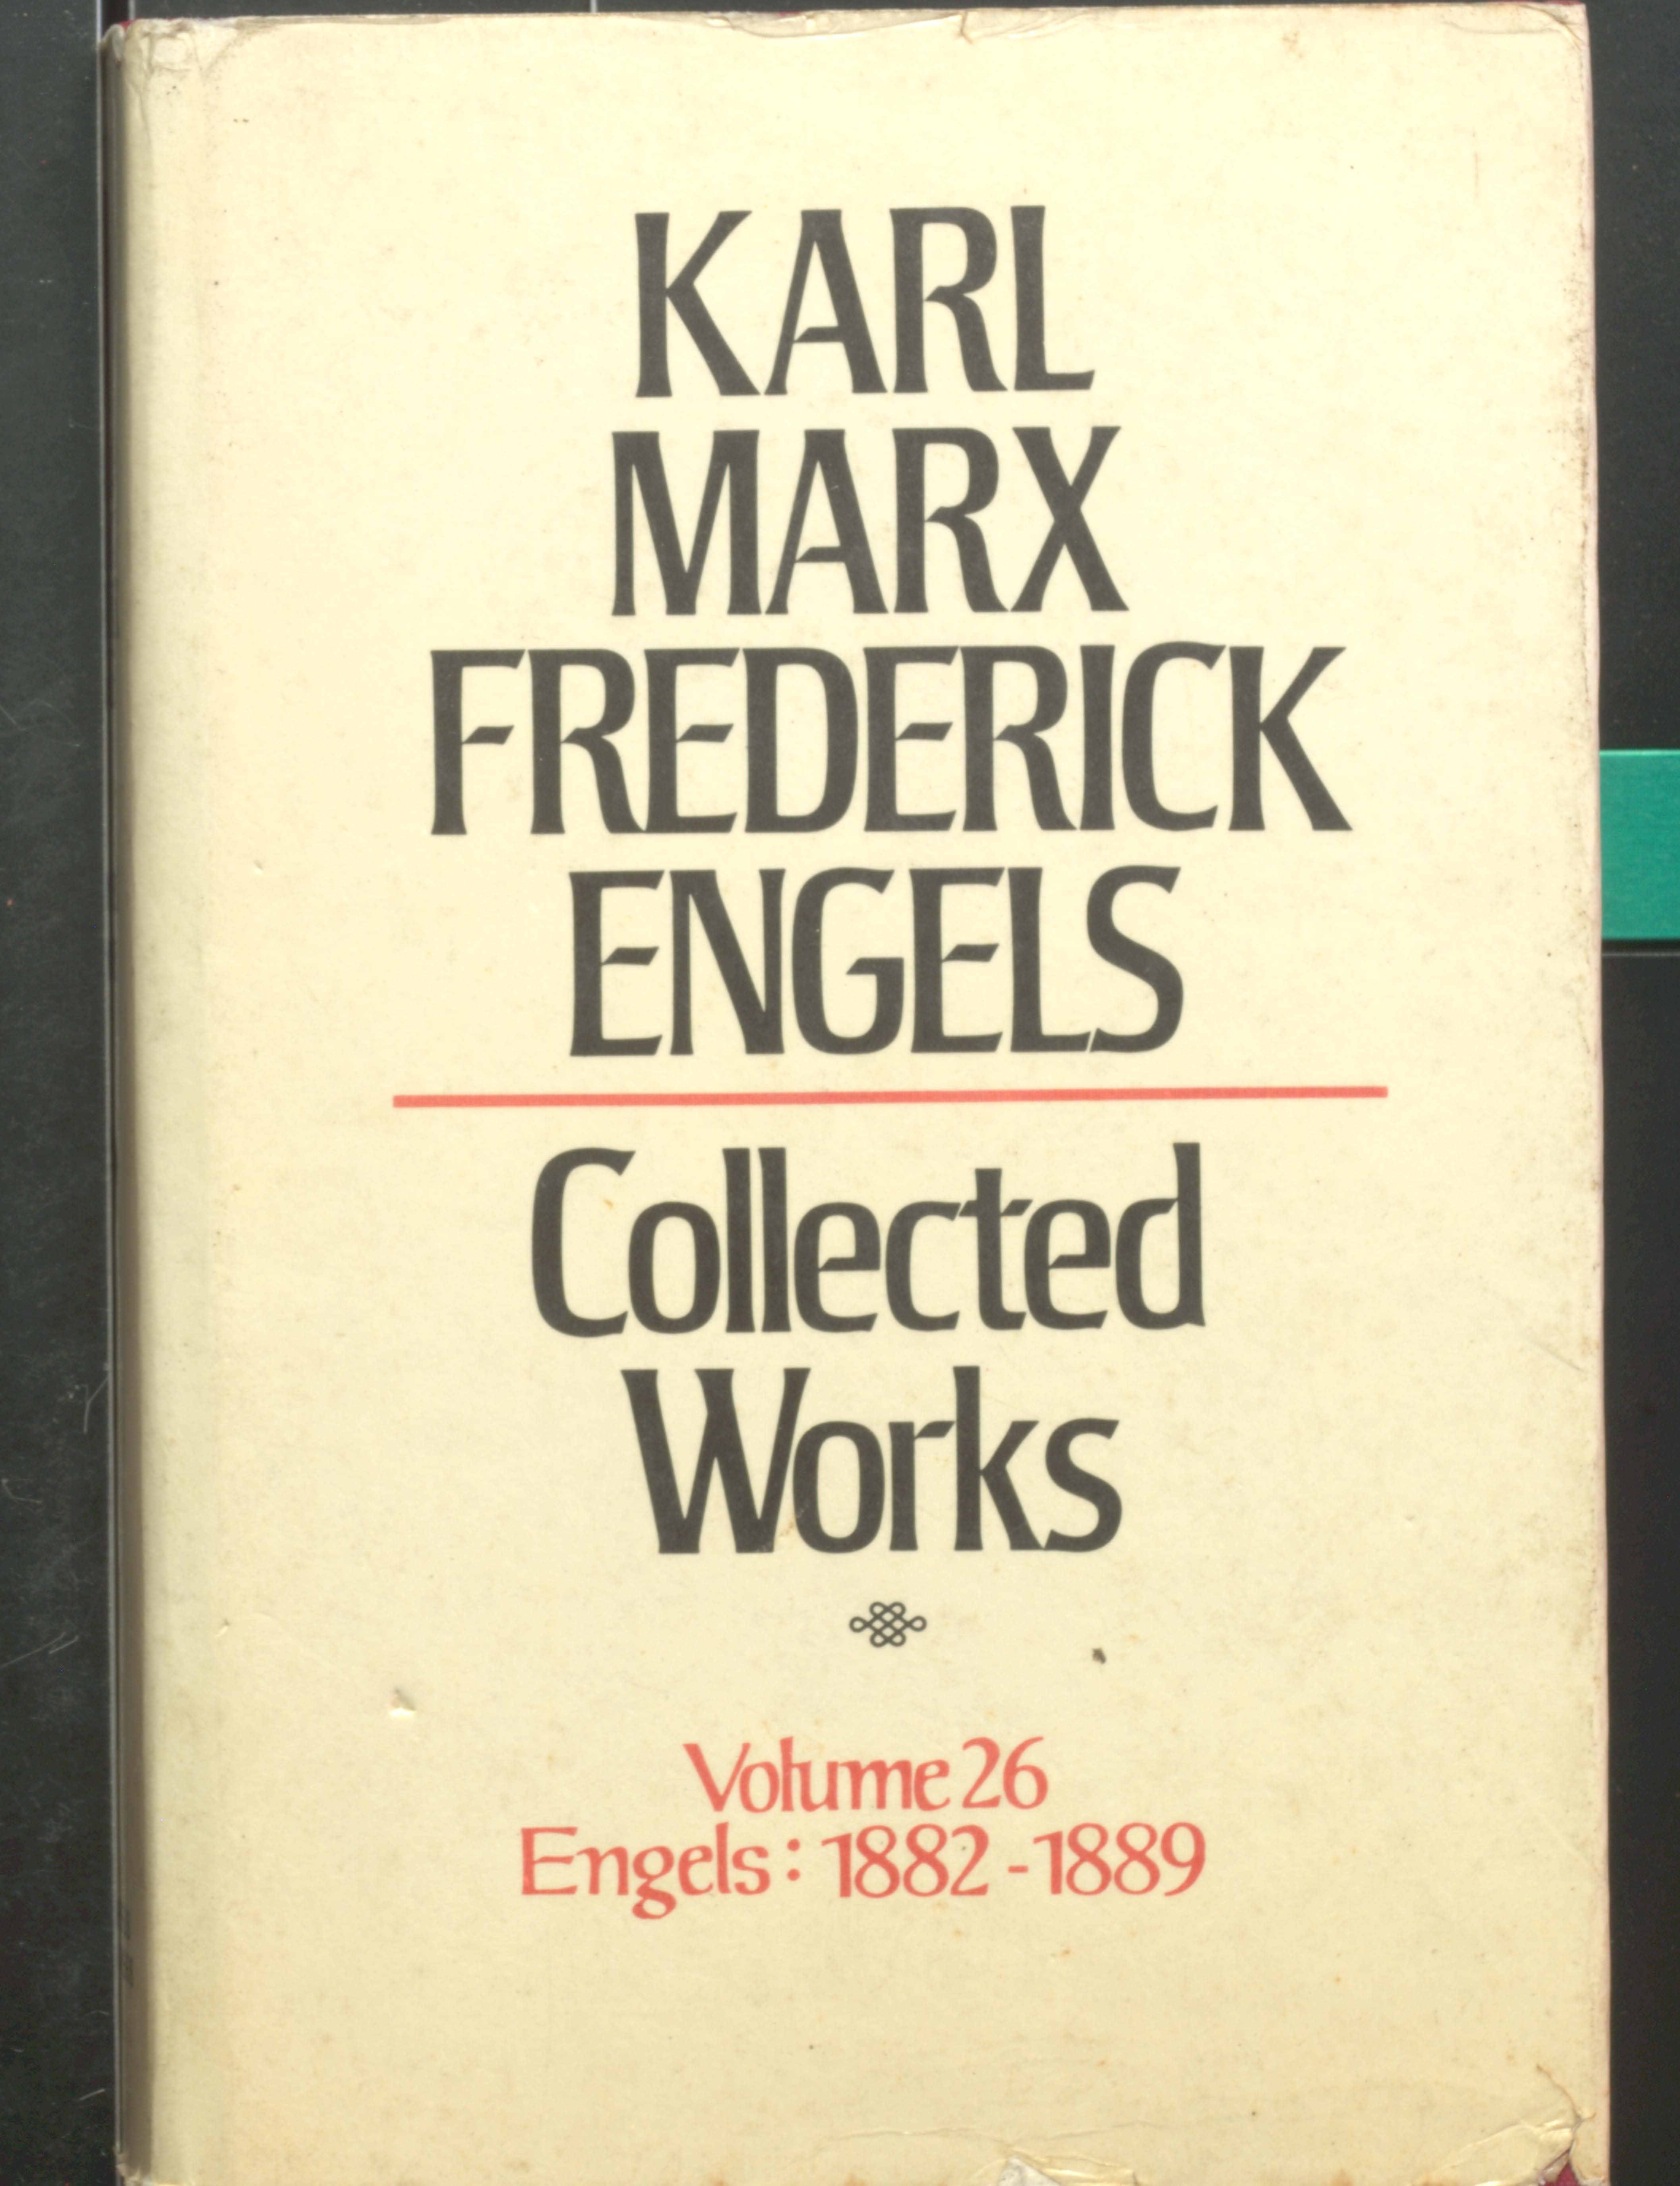 Karl Marx Frederick Engels Collected Works (V-26 1882-1889)